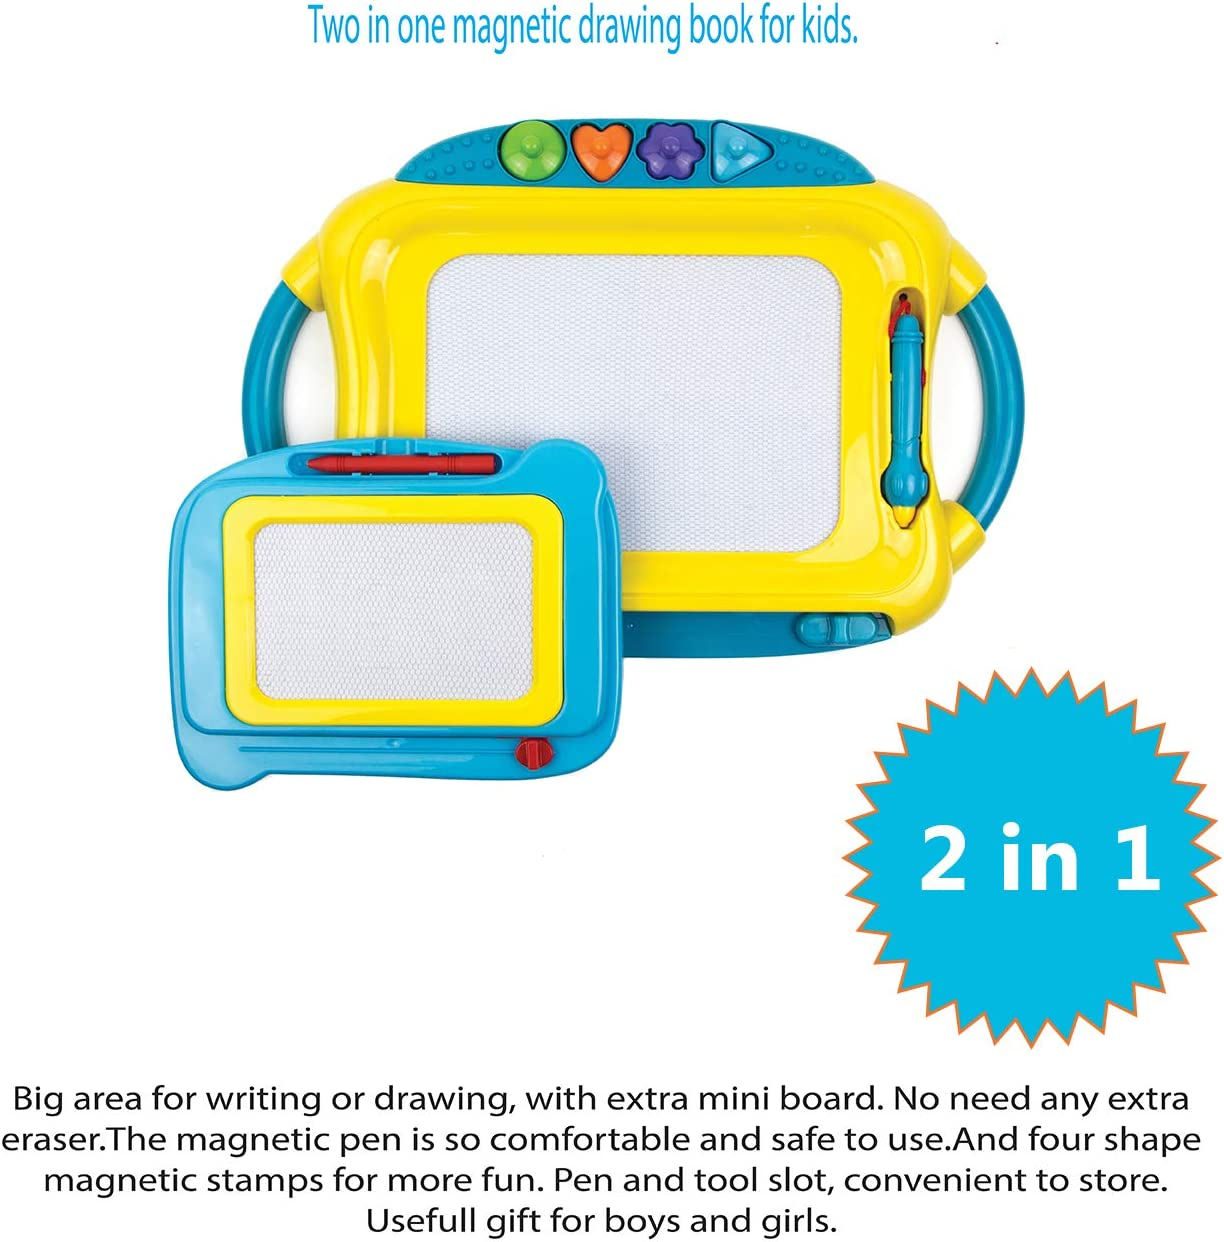 Double Doodle Board Book with 4 Beautiful Stamps and 2 Pens Educational Toy Toysery Magnetic Drawing Board Books for Babies Smart Writing Board for Drawing Games Large Magnetic Board for Kids